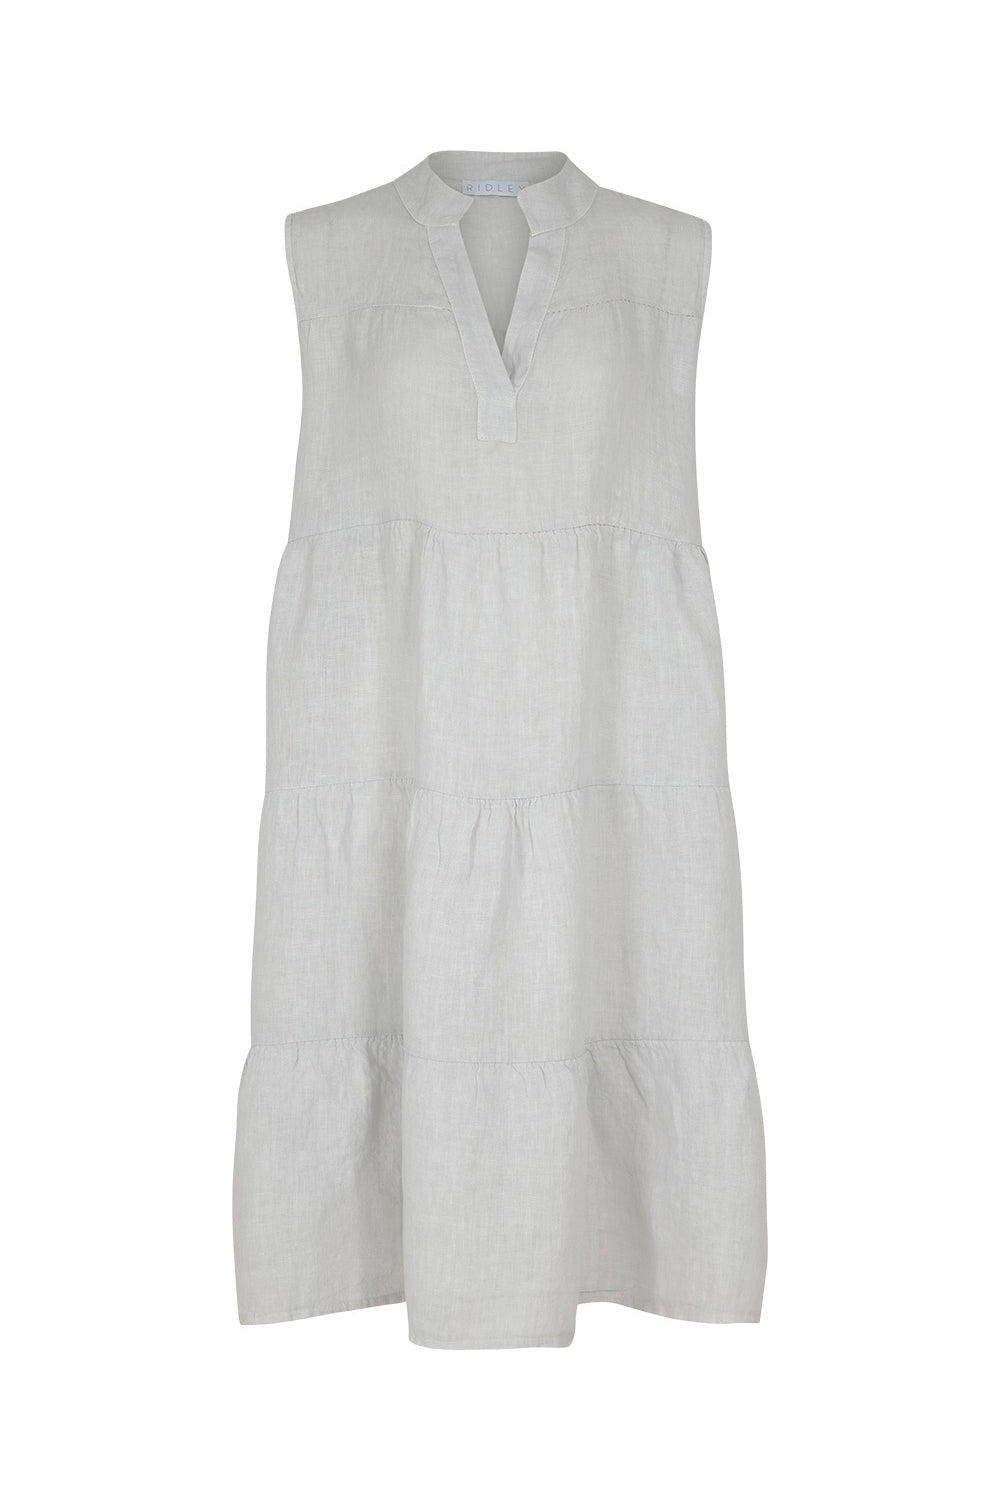 Reawaken Dress - Silver | Ridley The Label at Wallace and Gibbs